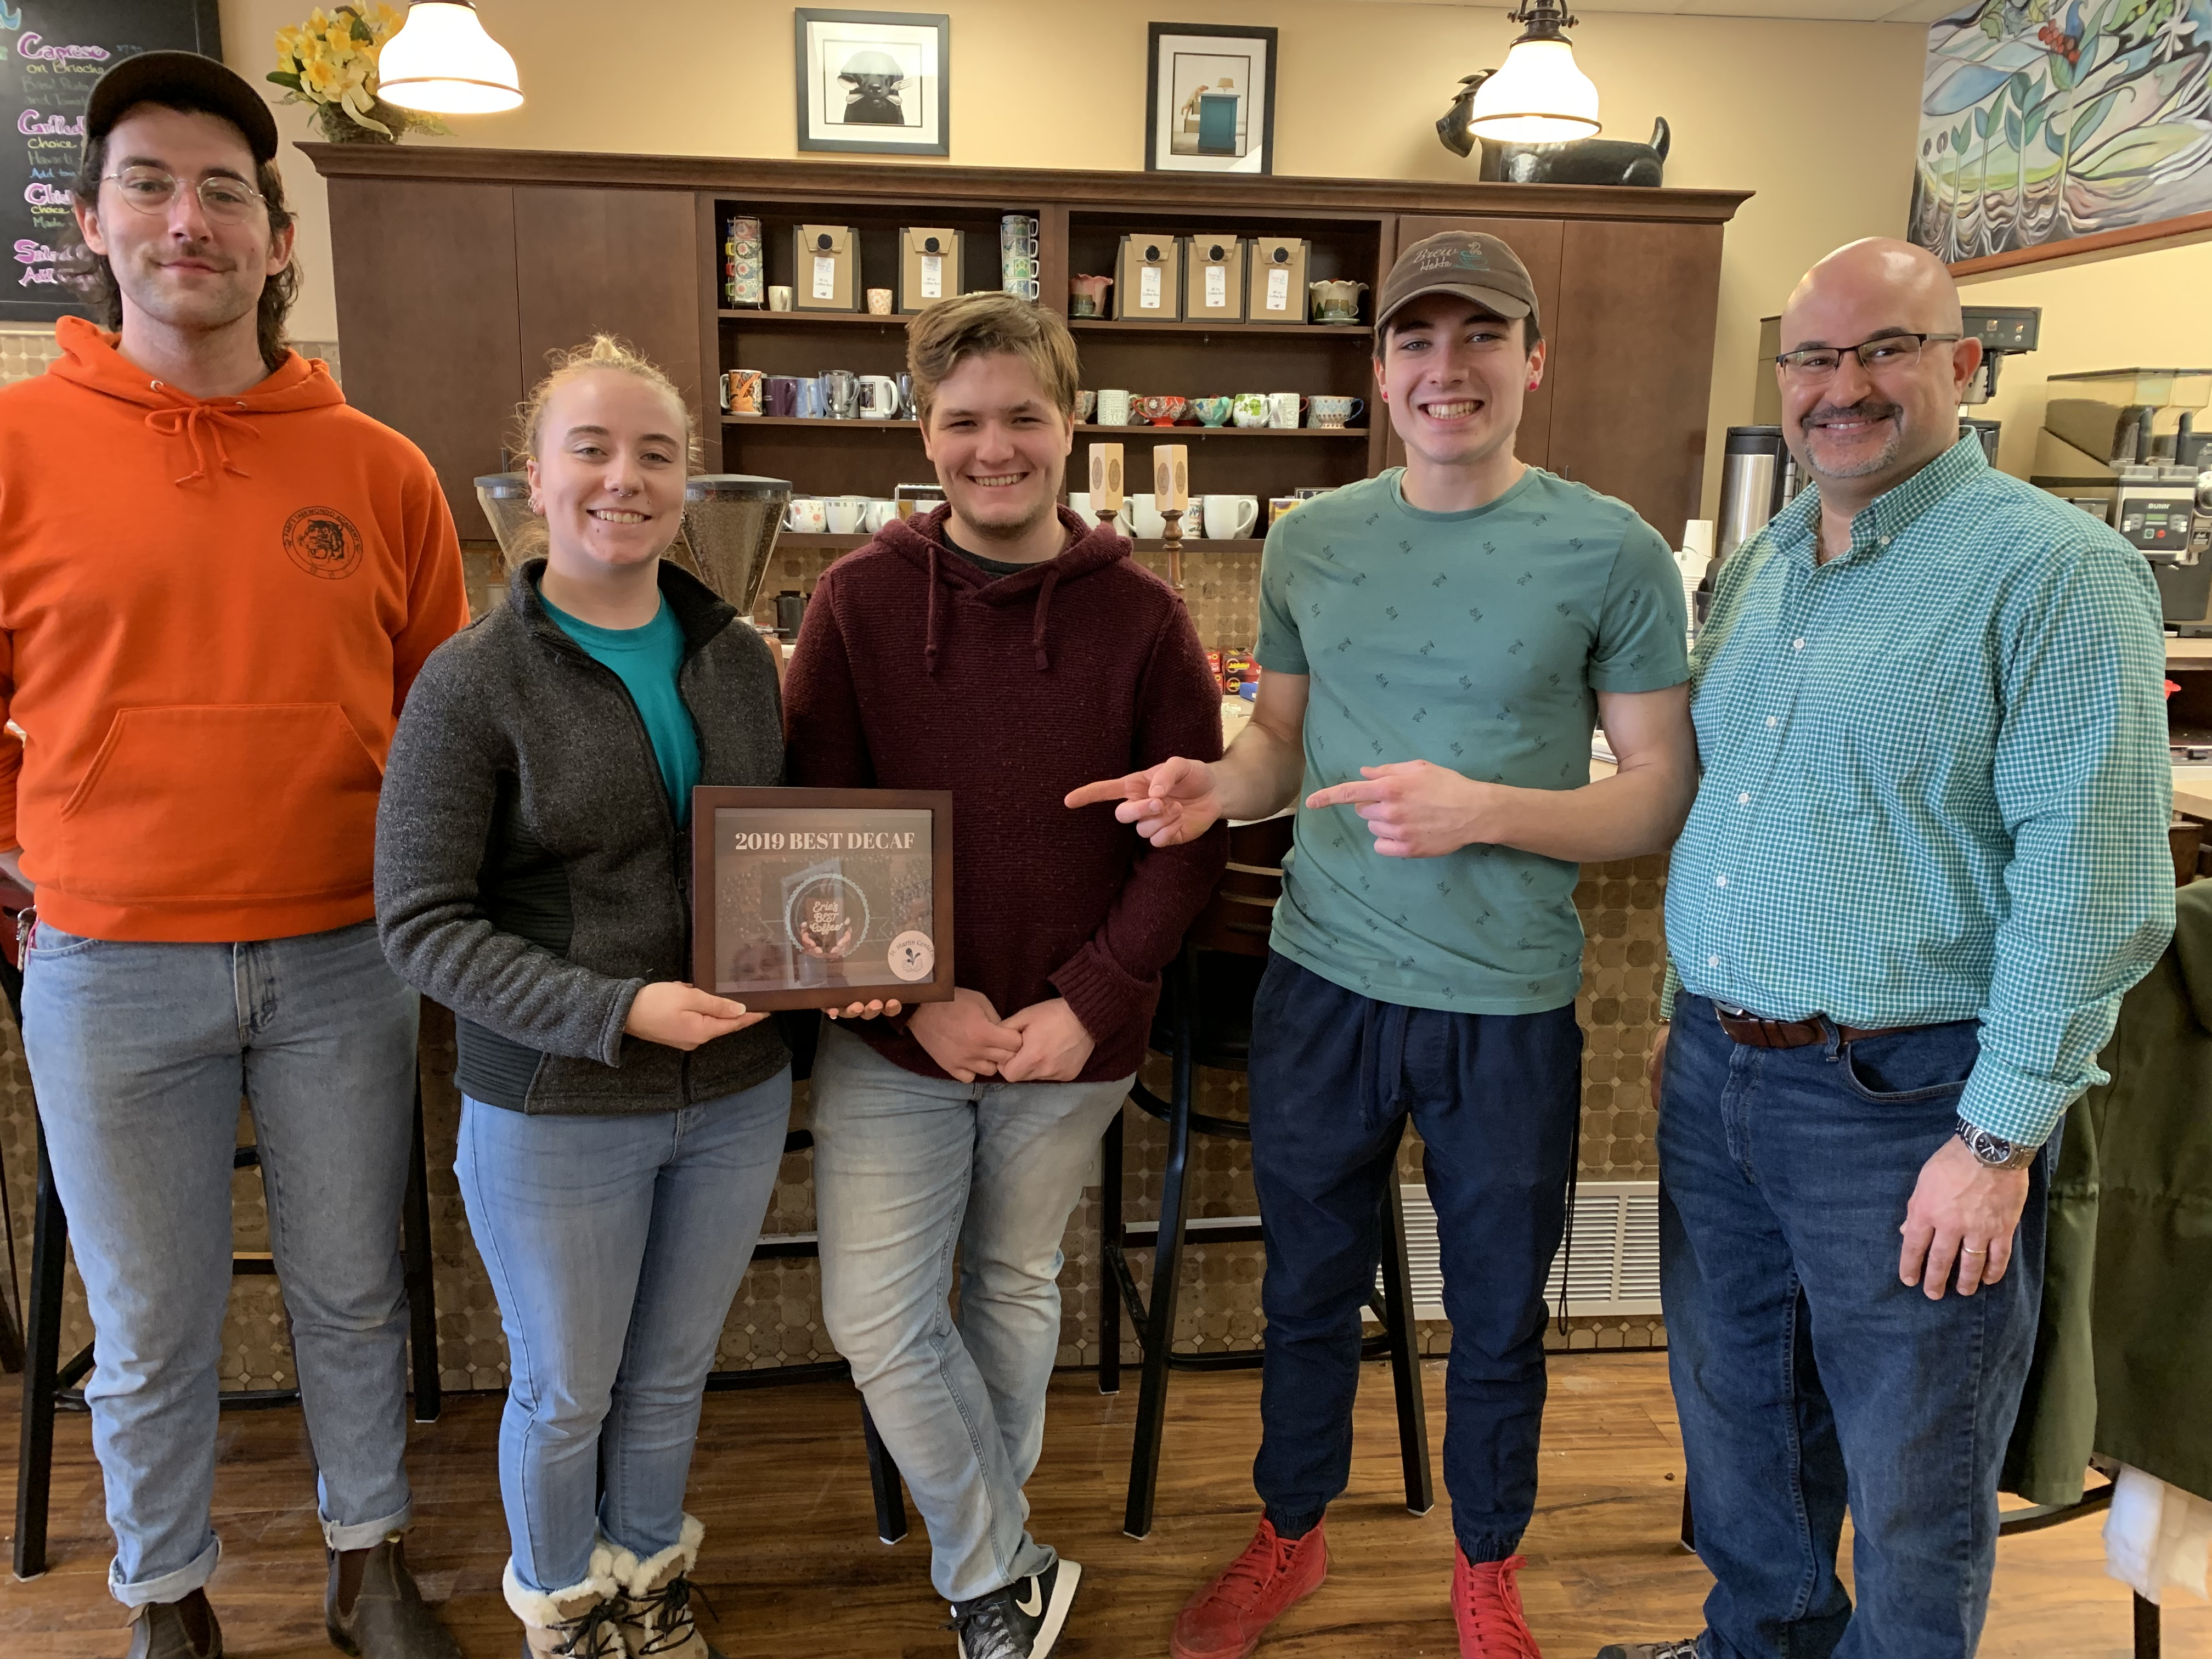 Best Decaf award: Brew Ha Ha at the Colony